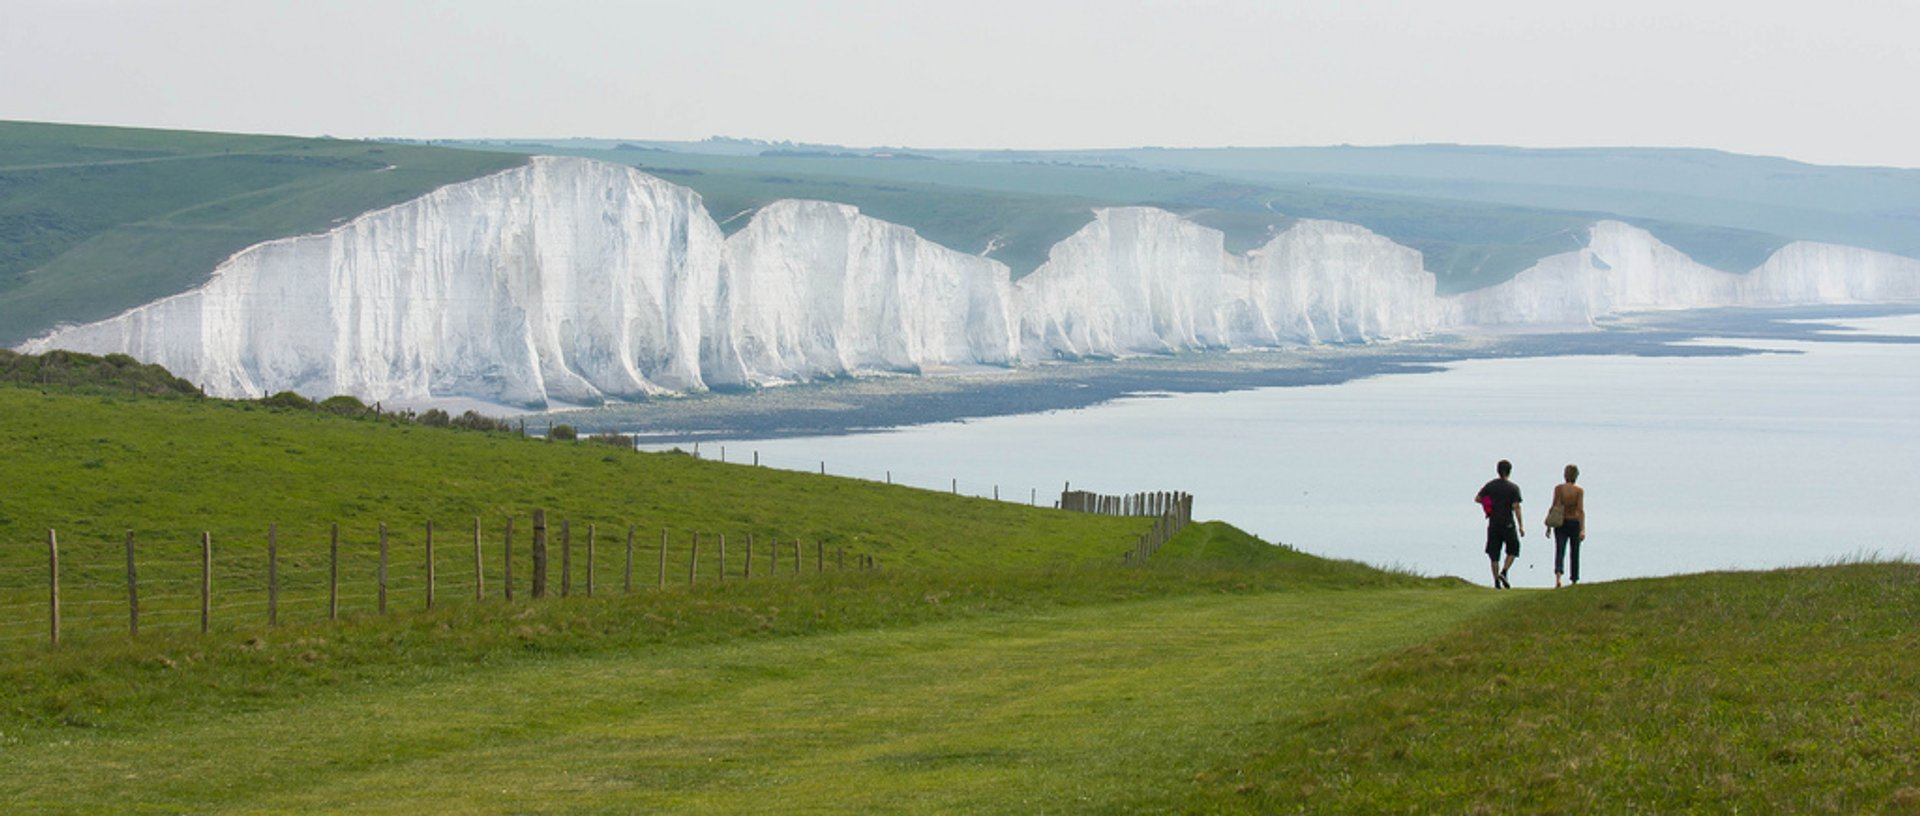 Chalk Cliffs of East Sussex in England 2019 - Best Time